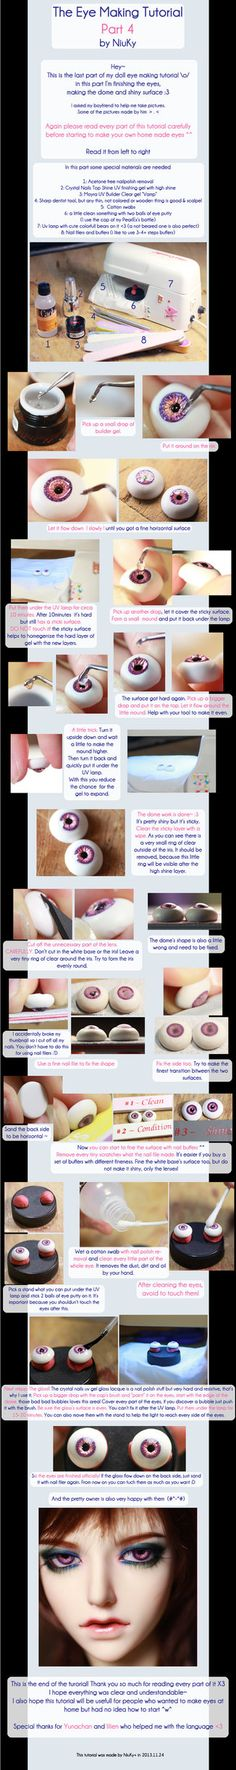 doll eye tutorial Not even sure where to pin this, or if I'd ever try to use it, but this is soooooo neat!